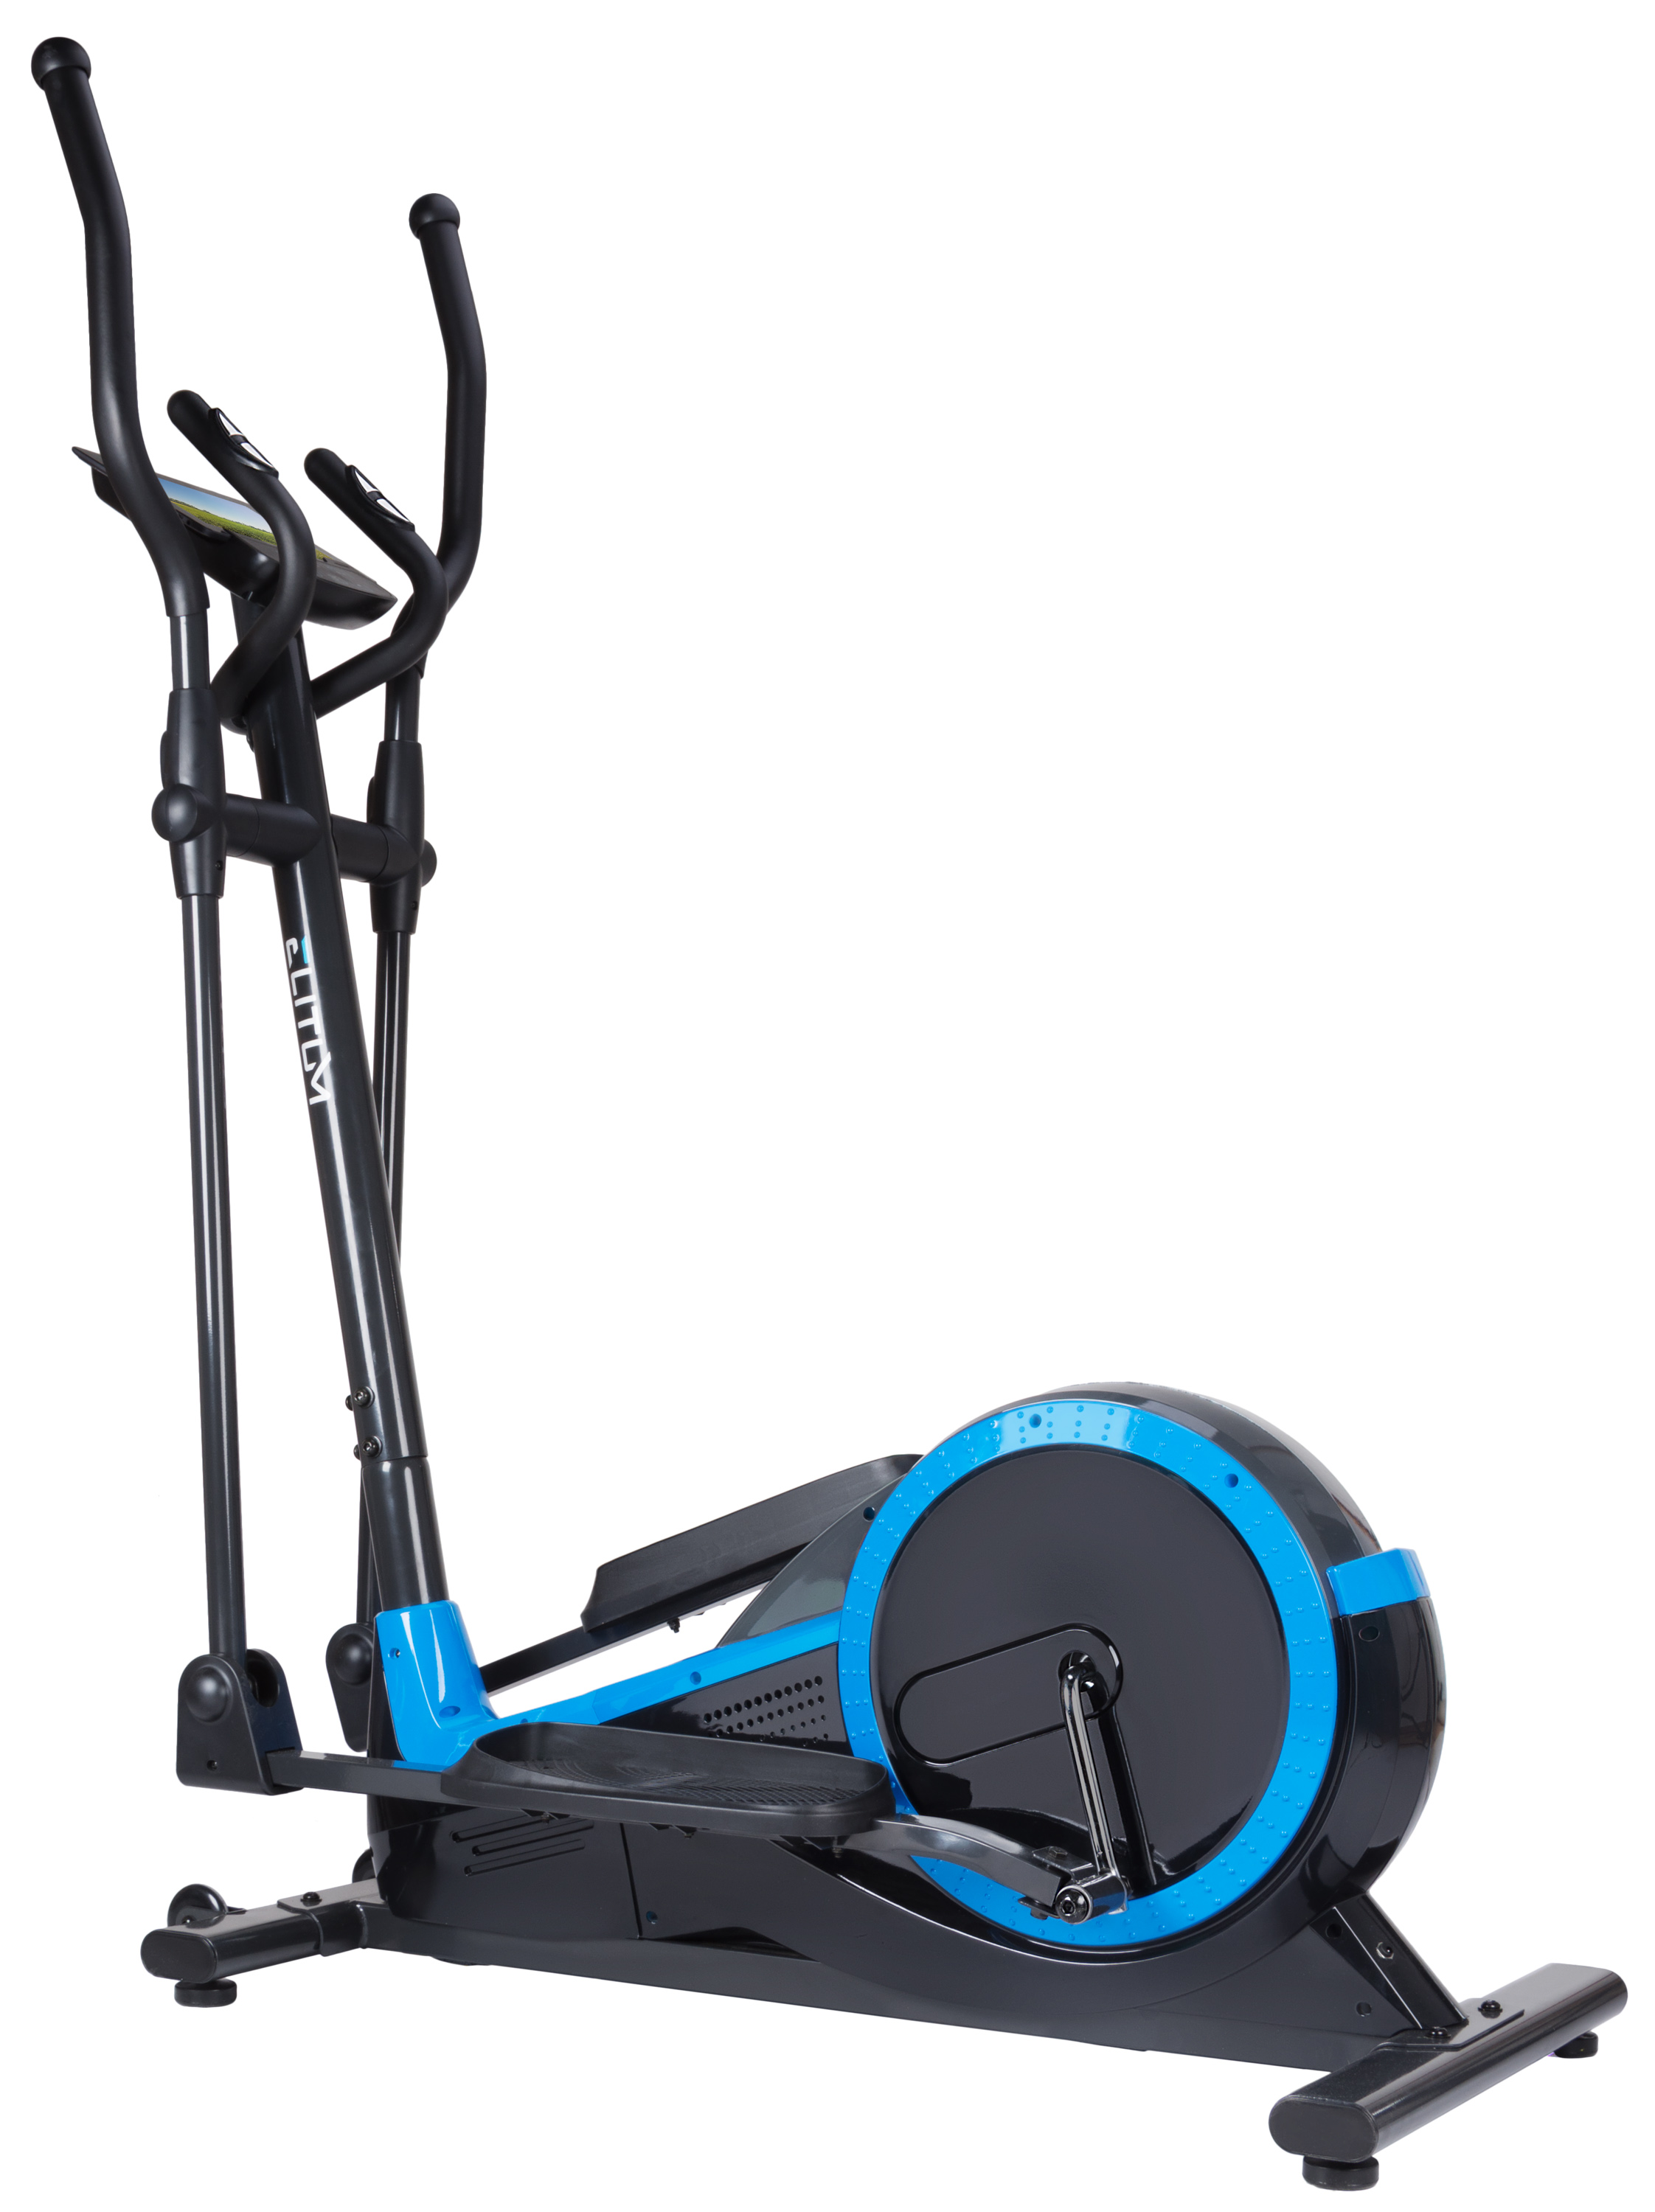 Ausdauertraining Ellipsentrainer Buzz von Hop-Sport Crosstrainer Stepper Elliptical Heimtrainer Fitness & Jogging